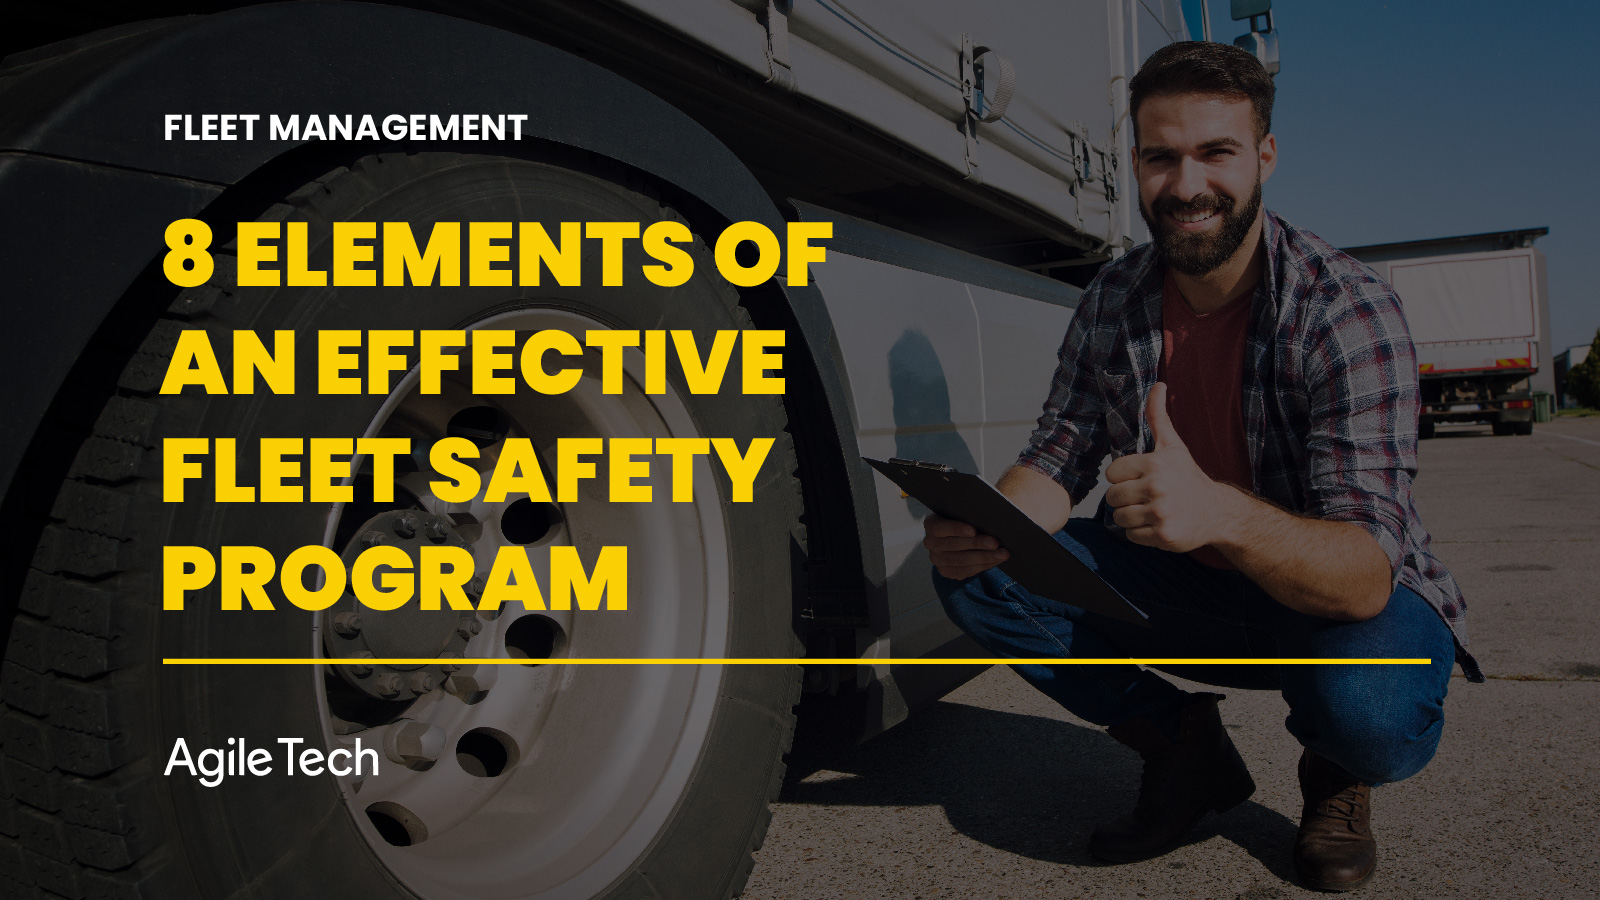 fleet safety program, 8 elements of an effective fleet safety management, 8 ways to improve fleet safety, fleet management solutions track360